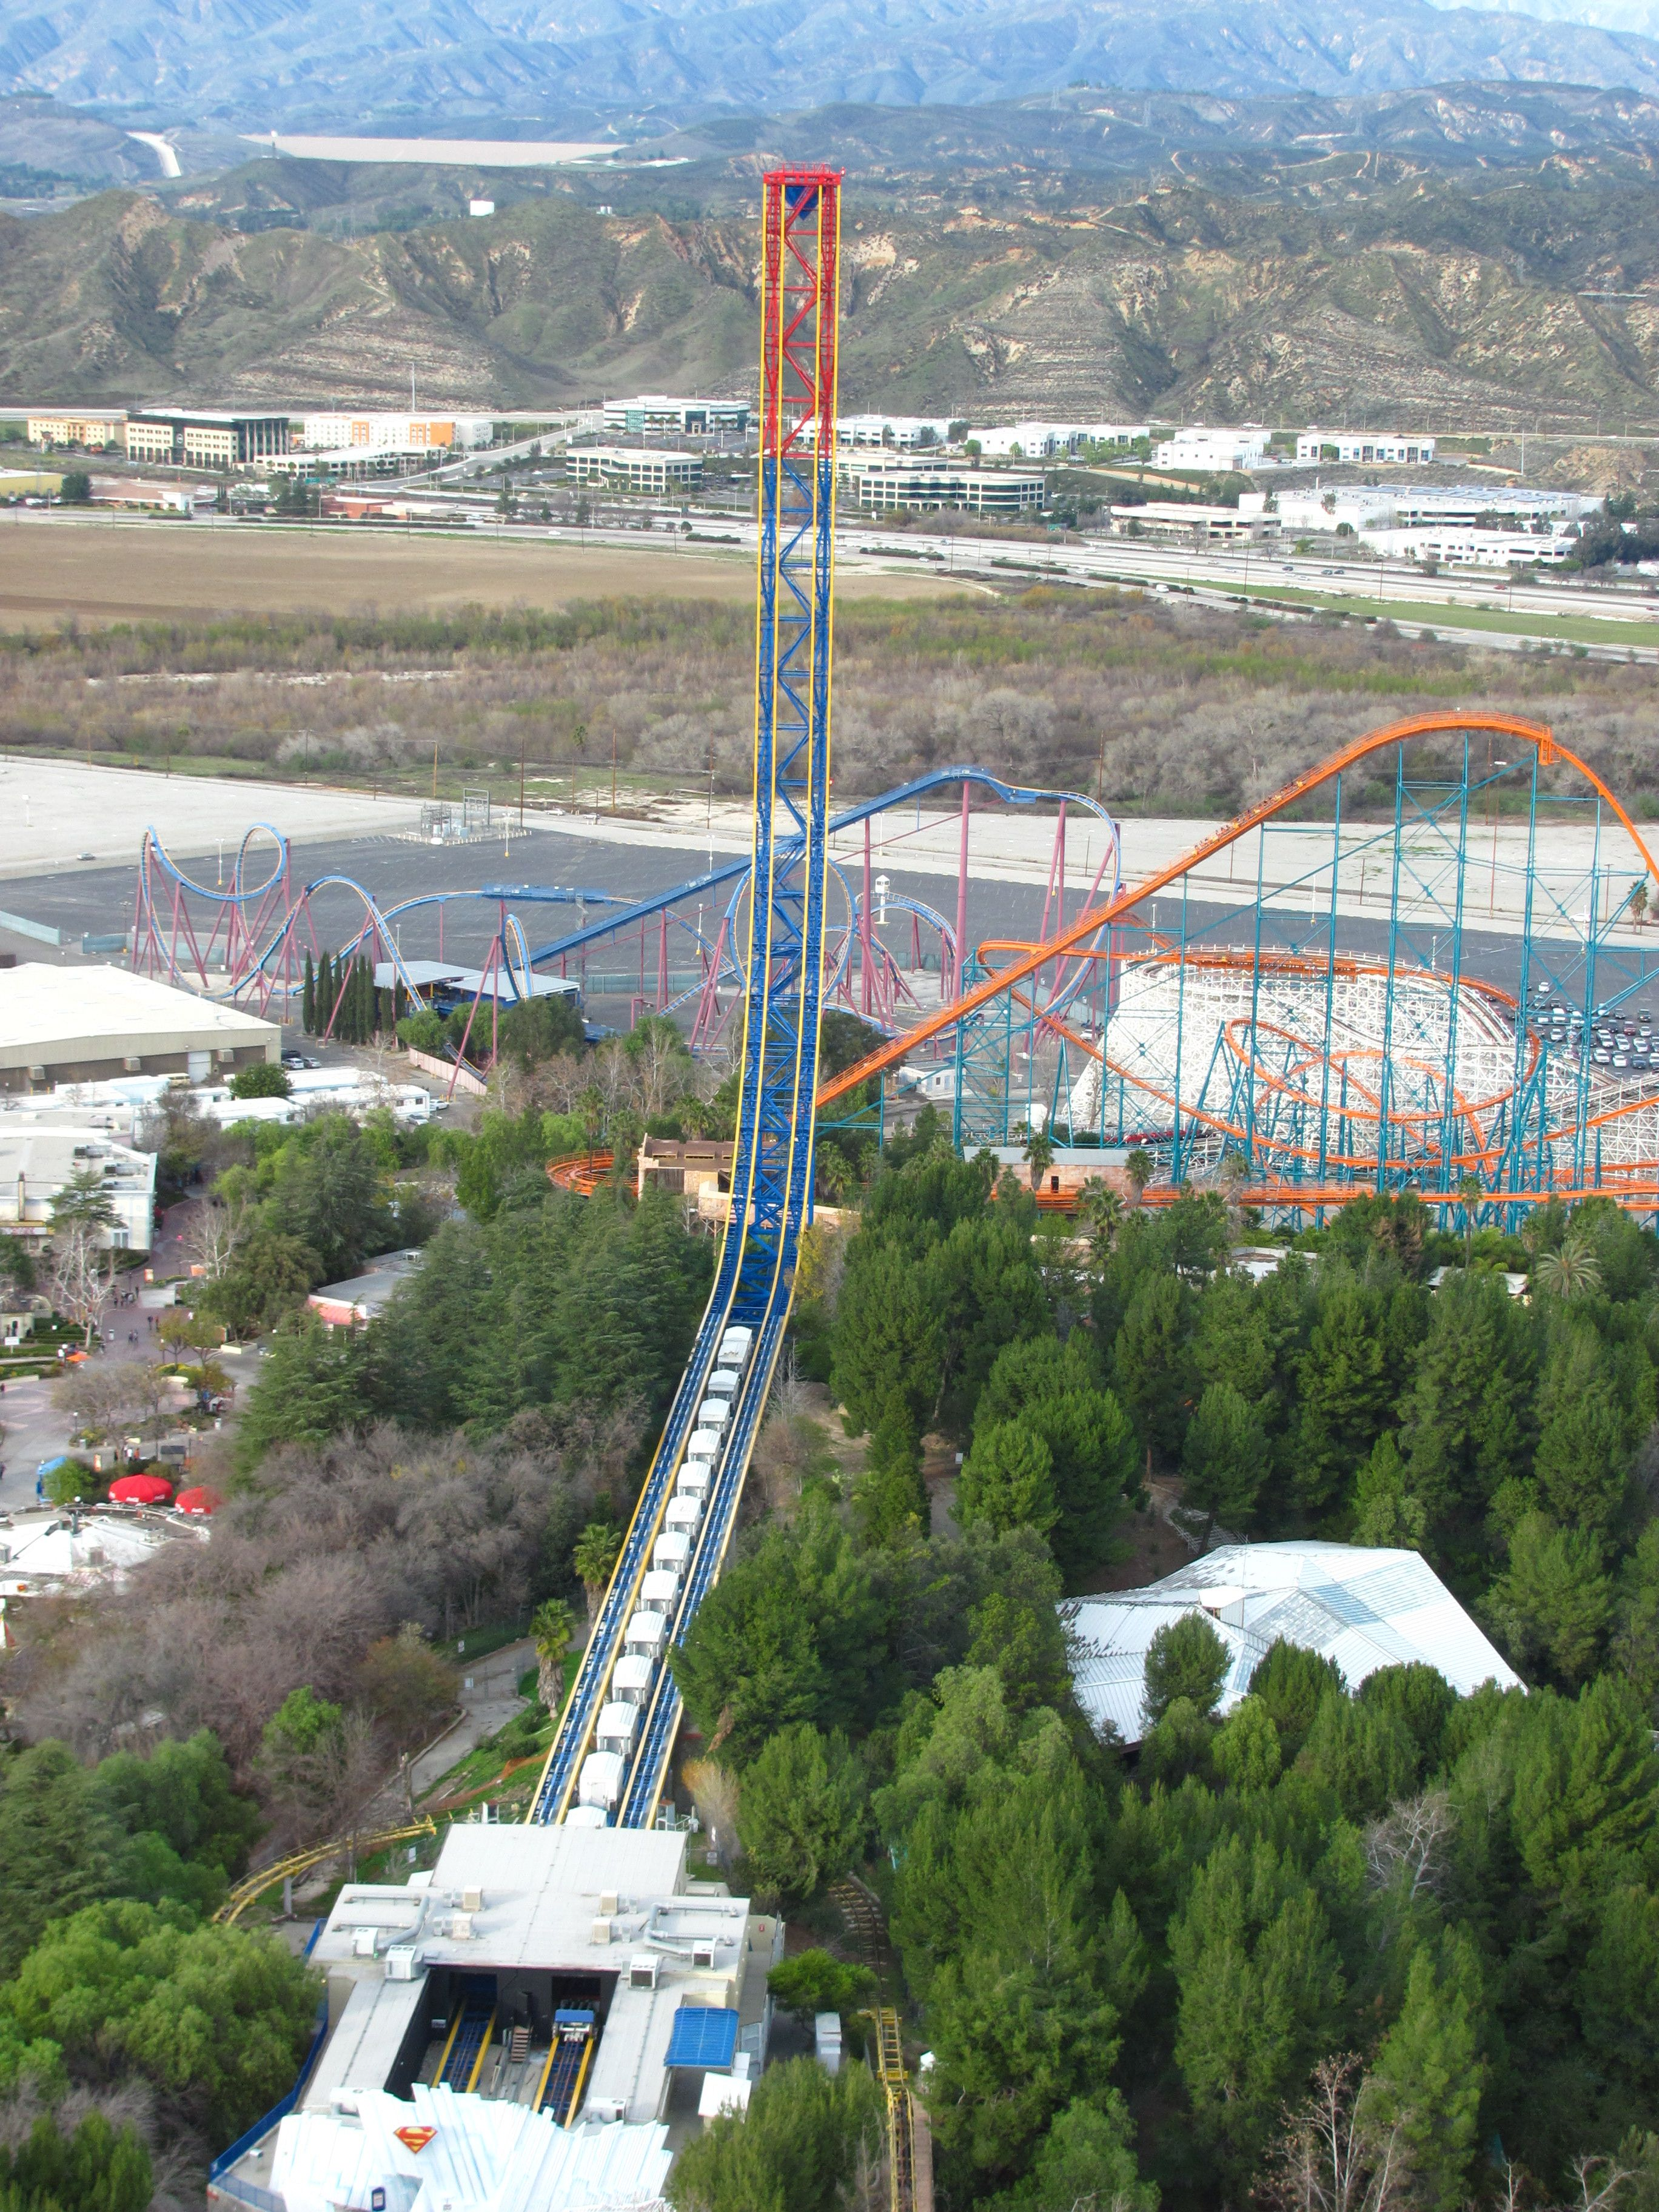 Superman Escape From Krypton Six Flags Magic Mountain Aerial View 2736 3648 Best Roller Coasters Theme Parks Rides Roller Coaster